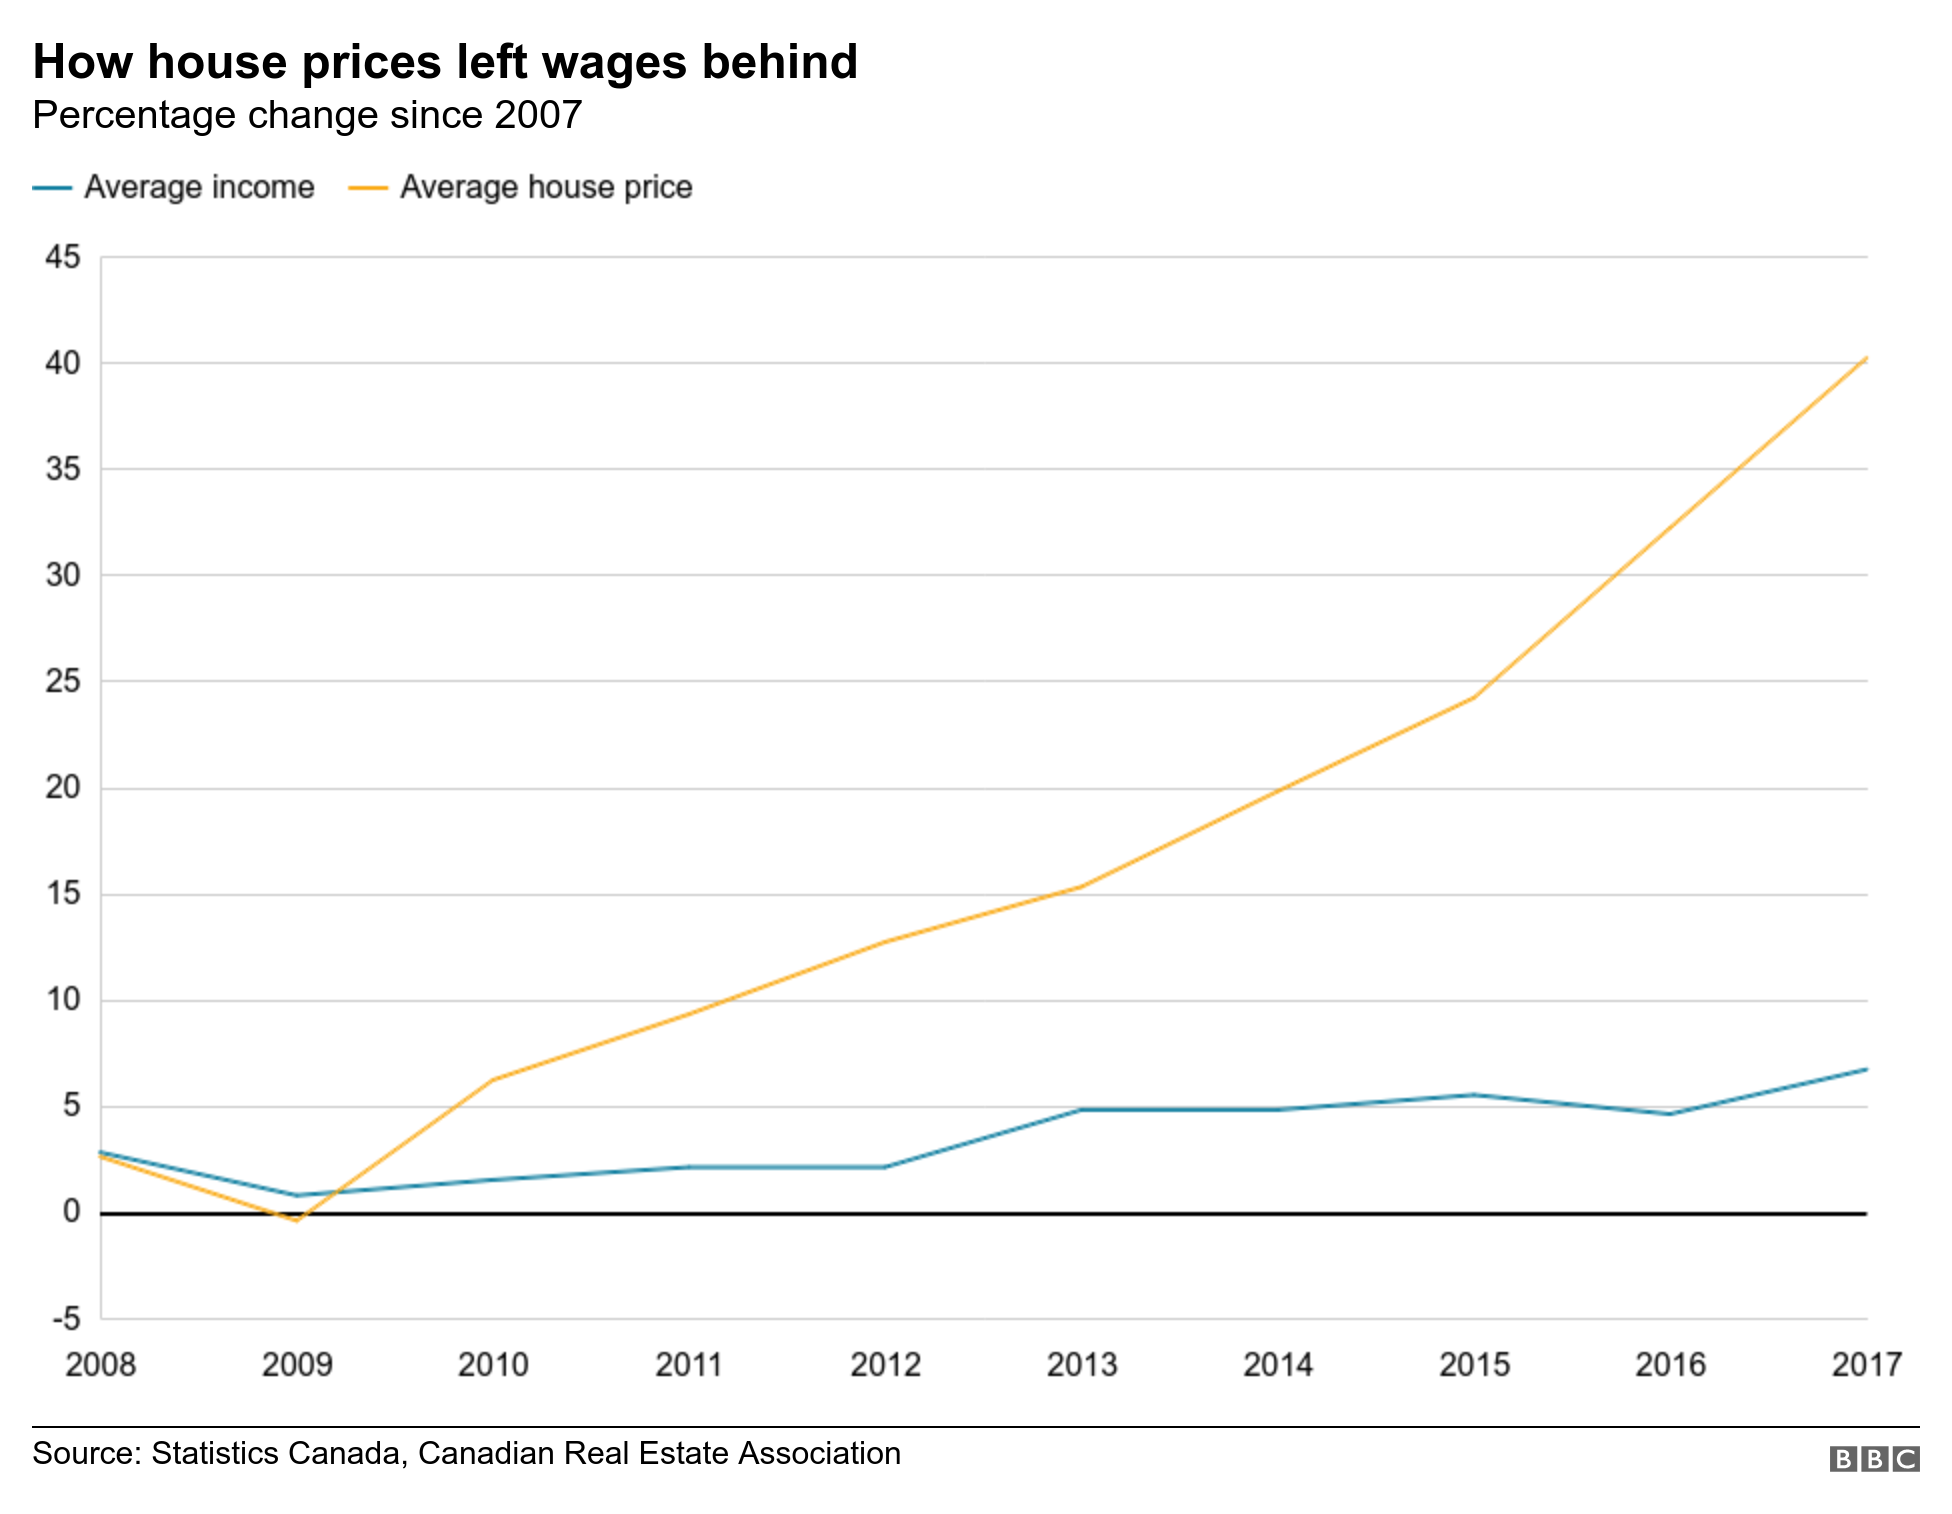 How house prices left wages behind